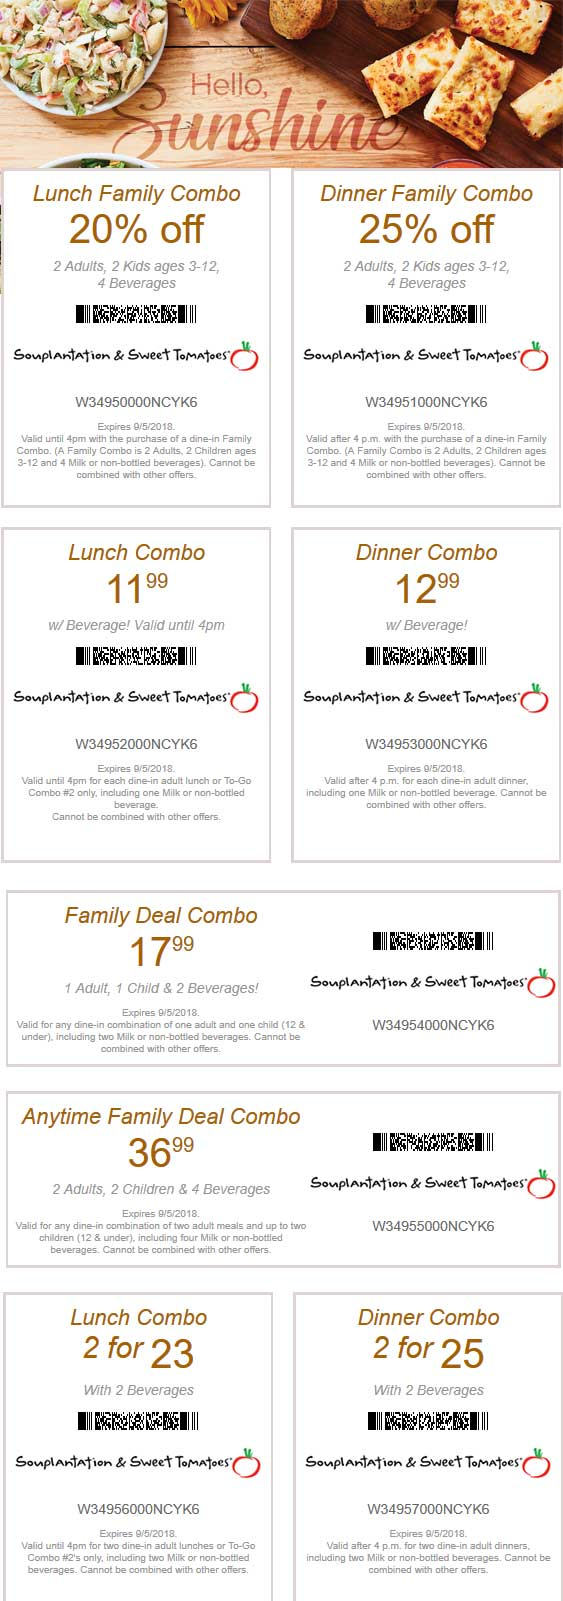 Sweet Tomatoes coupons & promo code for [April 2020]